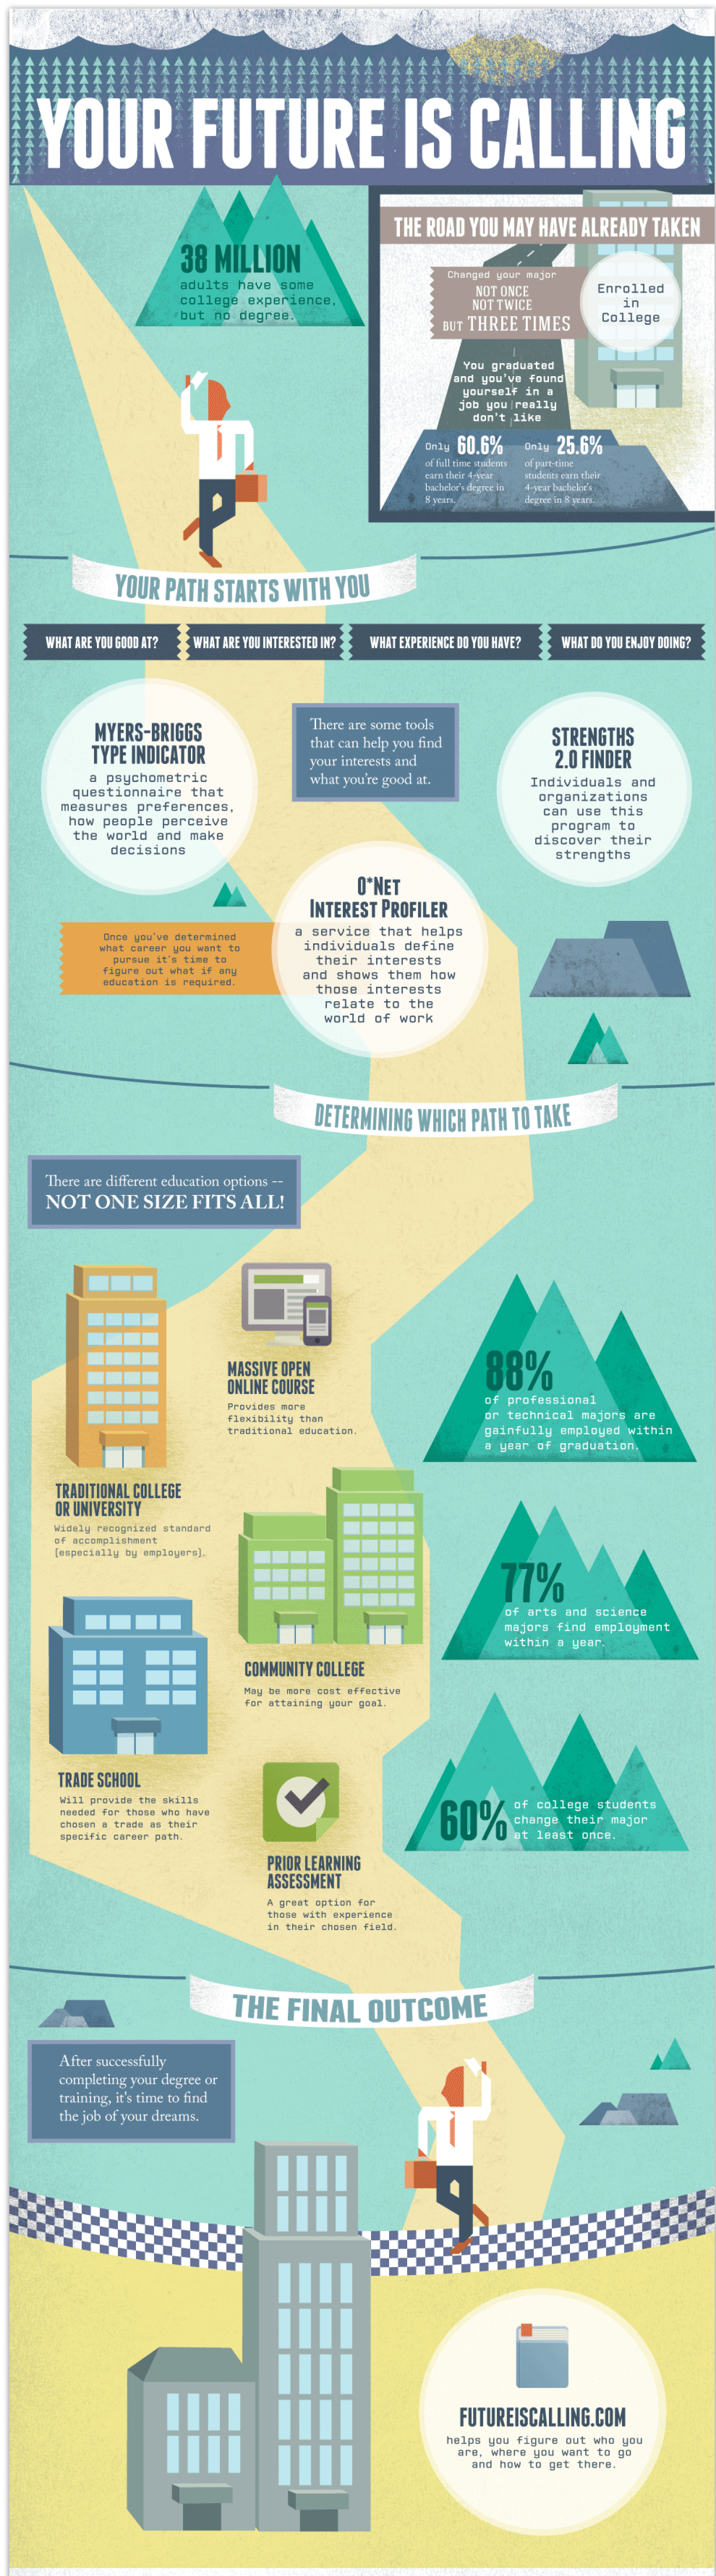 Your Future is Calling Infographic